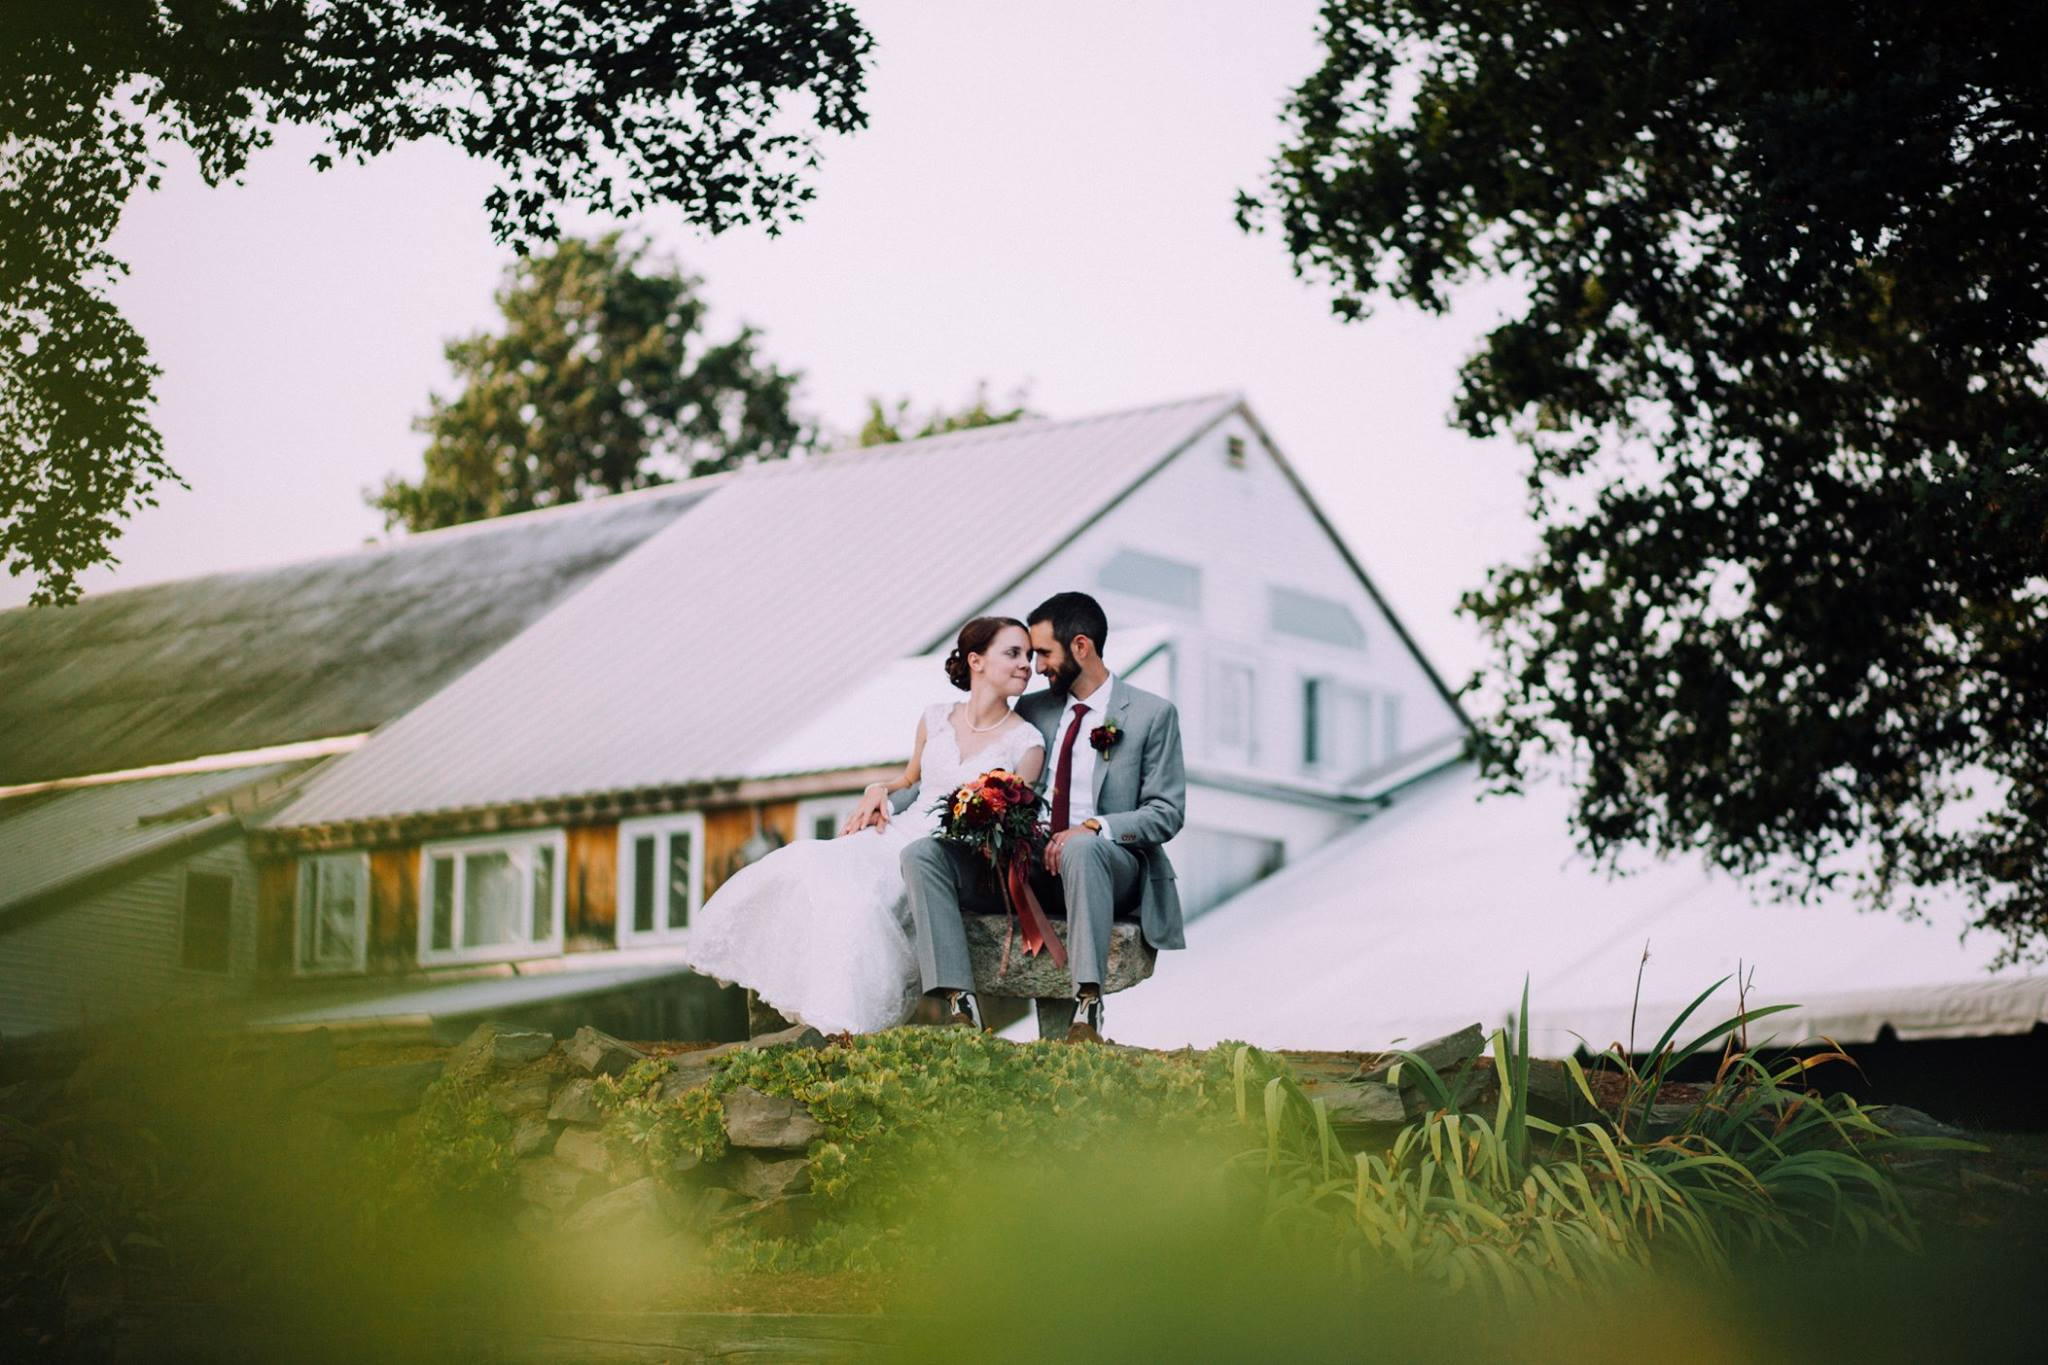 Kristen + Matt at their Flag Hill Winery wedding (Lee, NH)